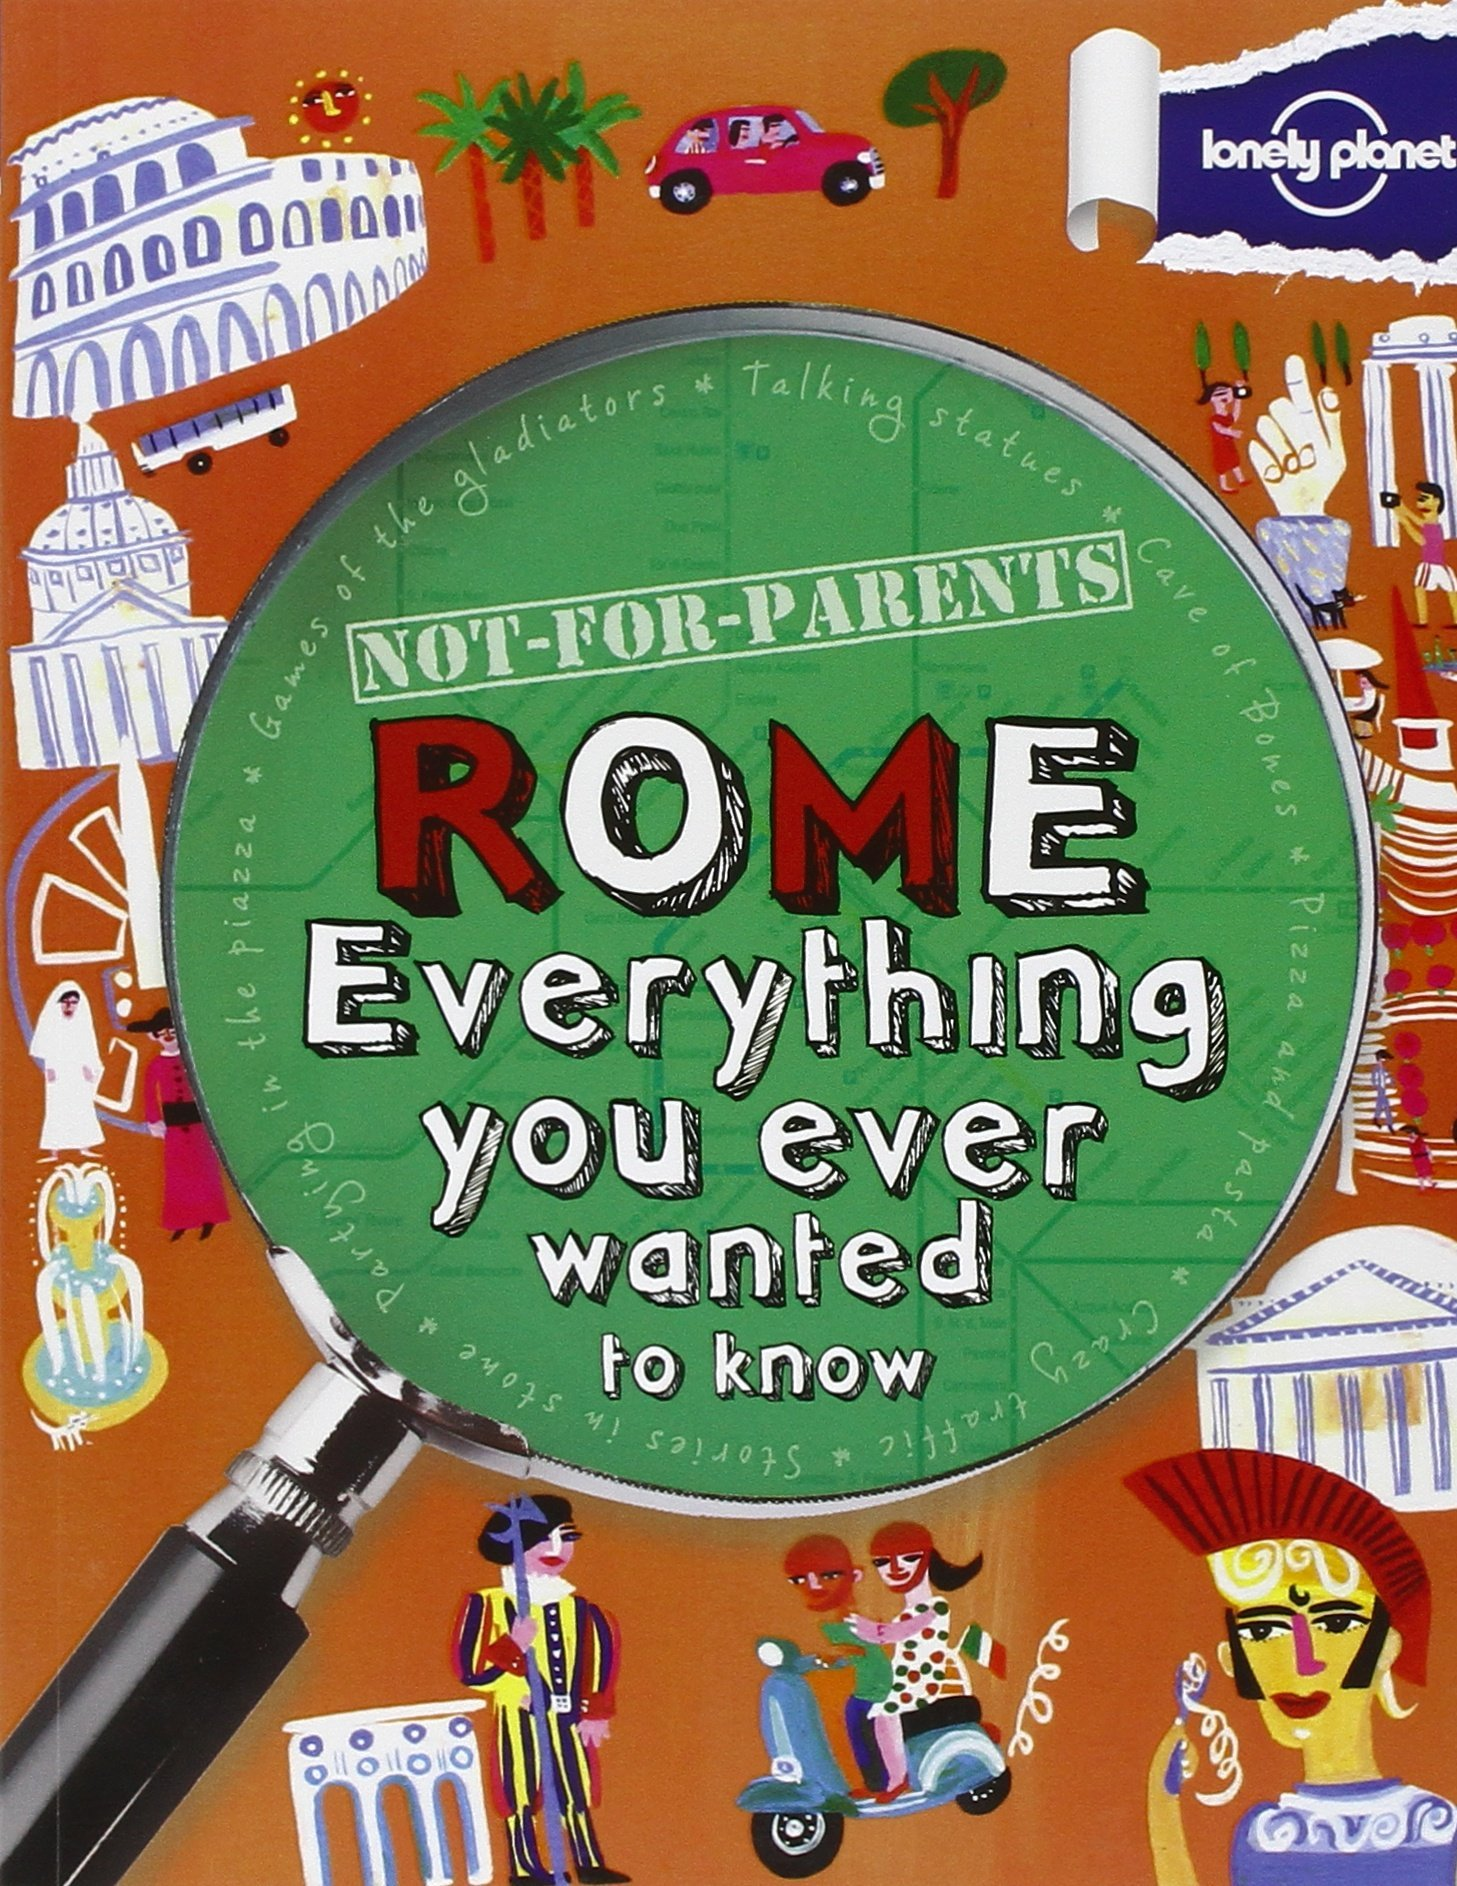 not for parents rome everything you ever wanted to know lonely